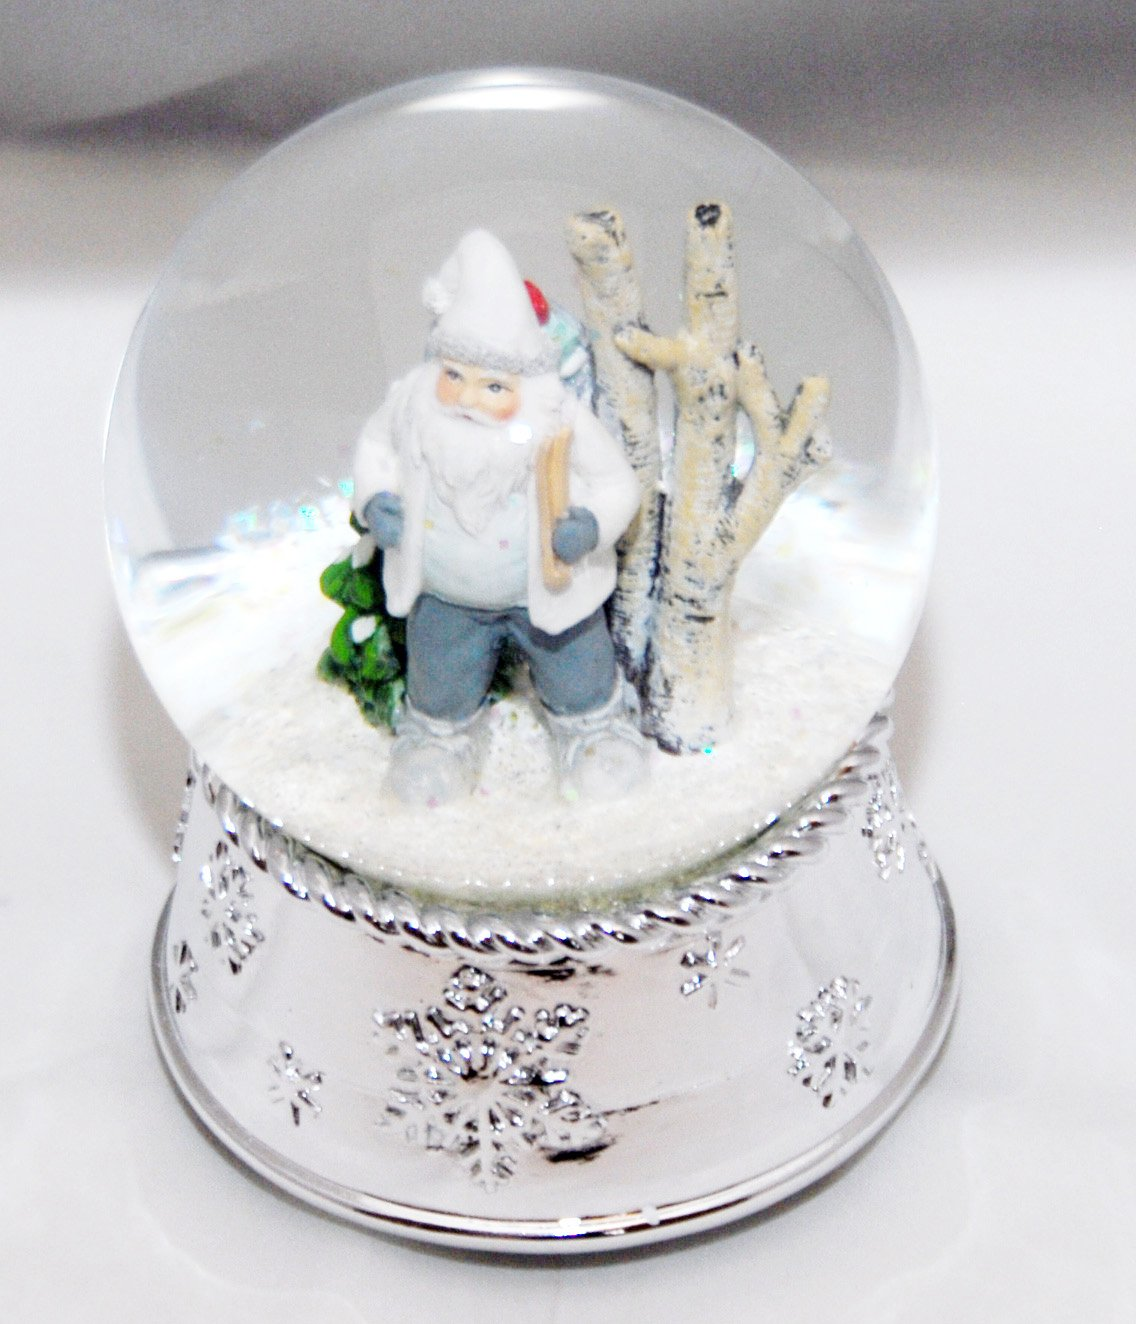 20073 Snow Globe Santa white in nostalgic wood silver base snowflake music box 5.5 inch height by Minium-Collection (Image #2)